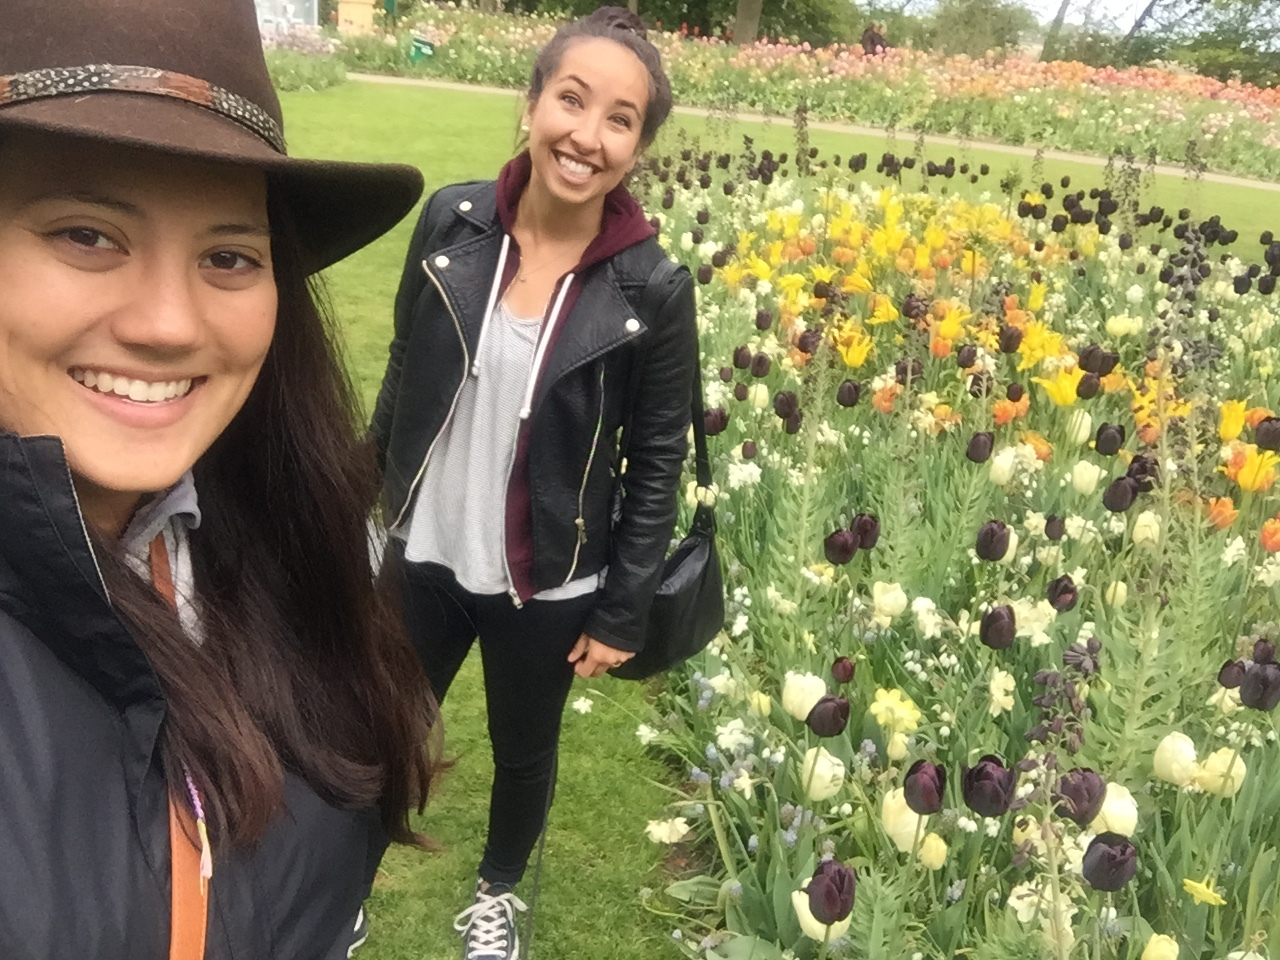 Hey! Rose and Emily reporting from the Netherlands!